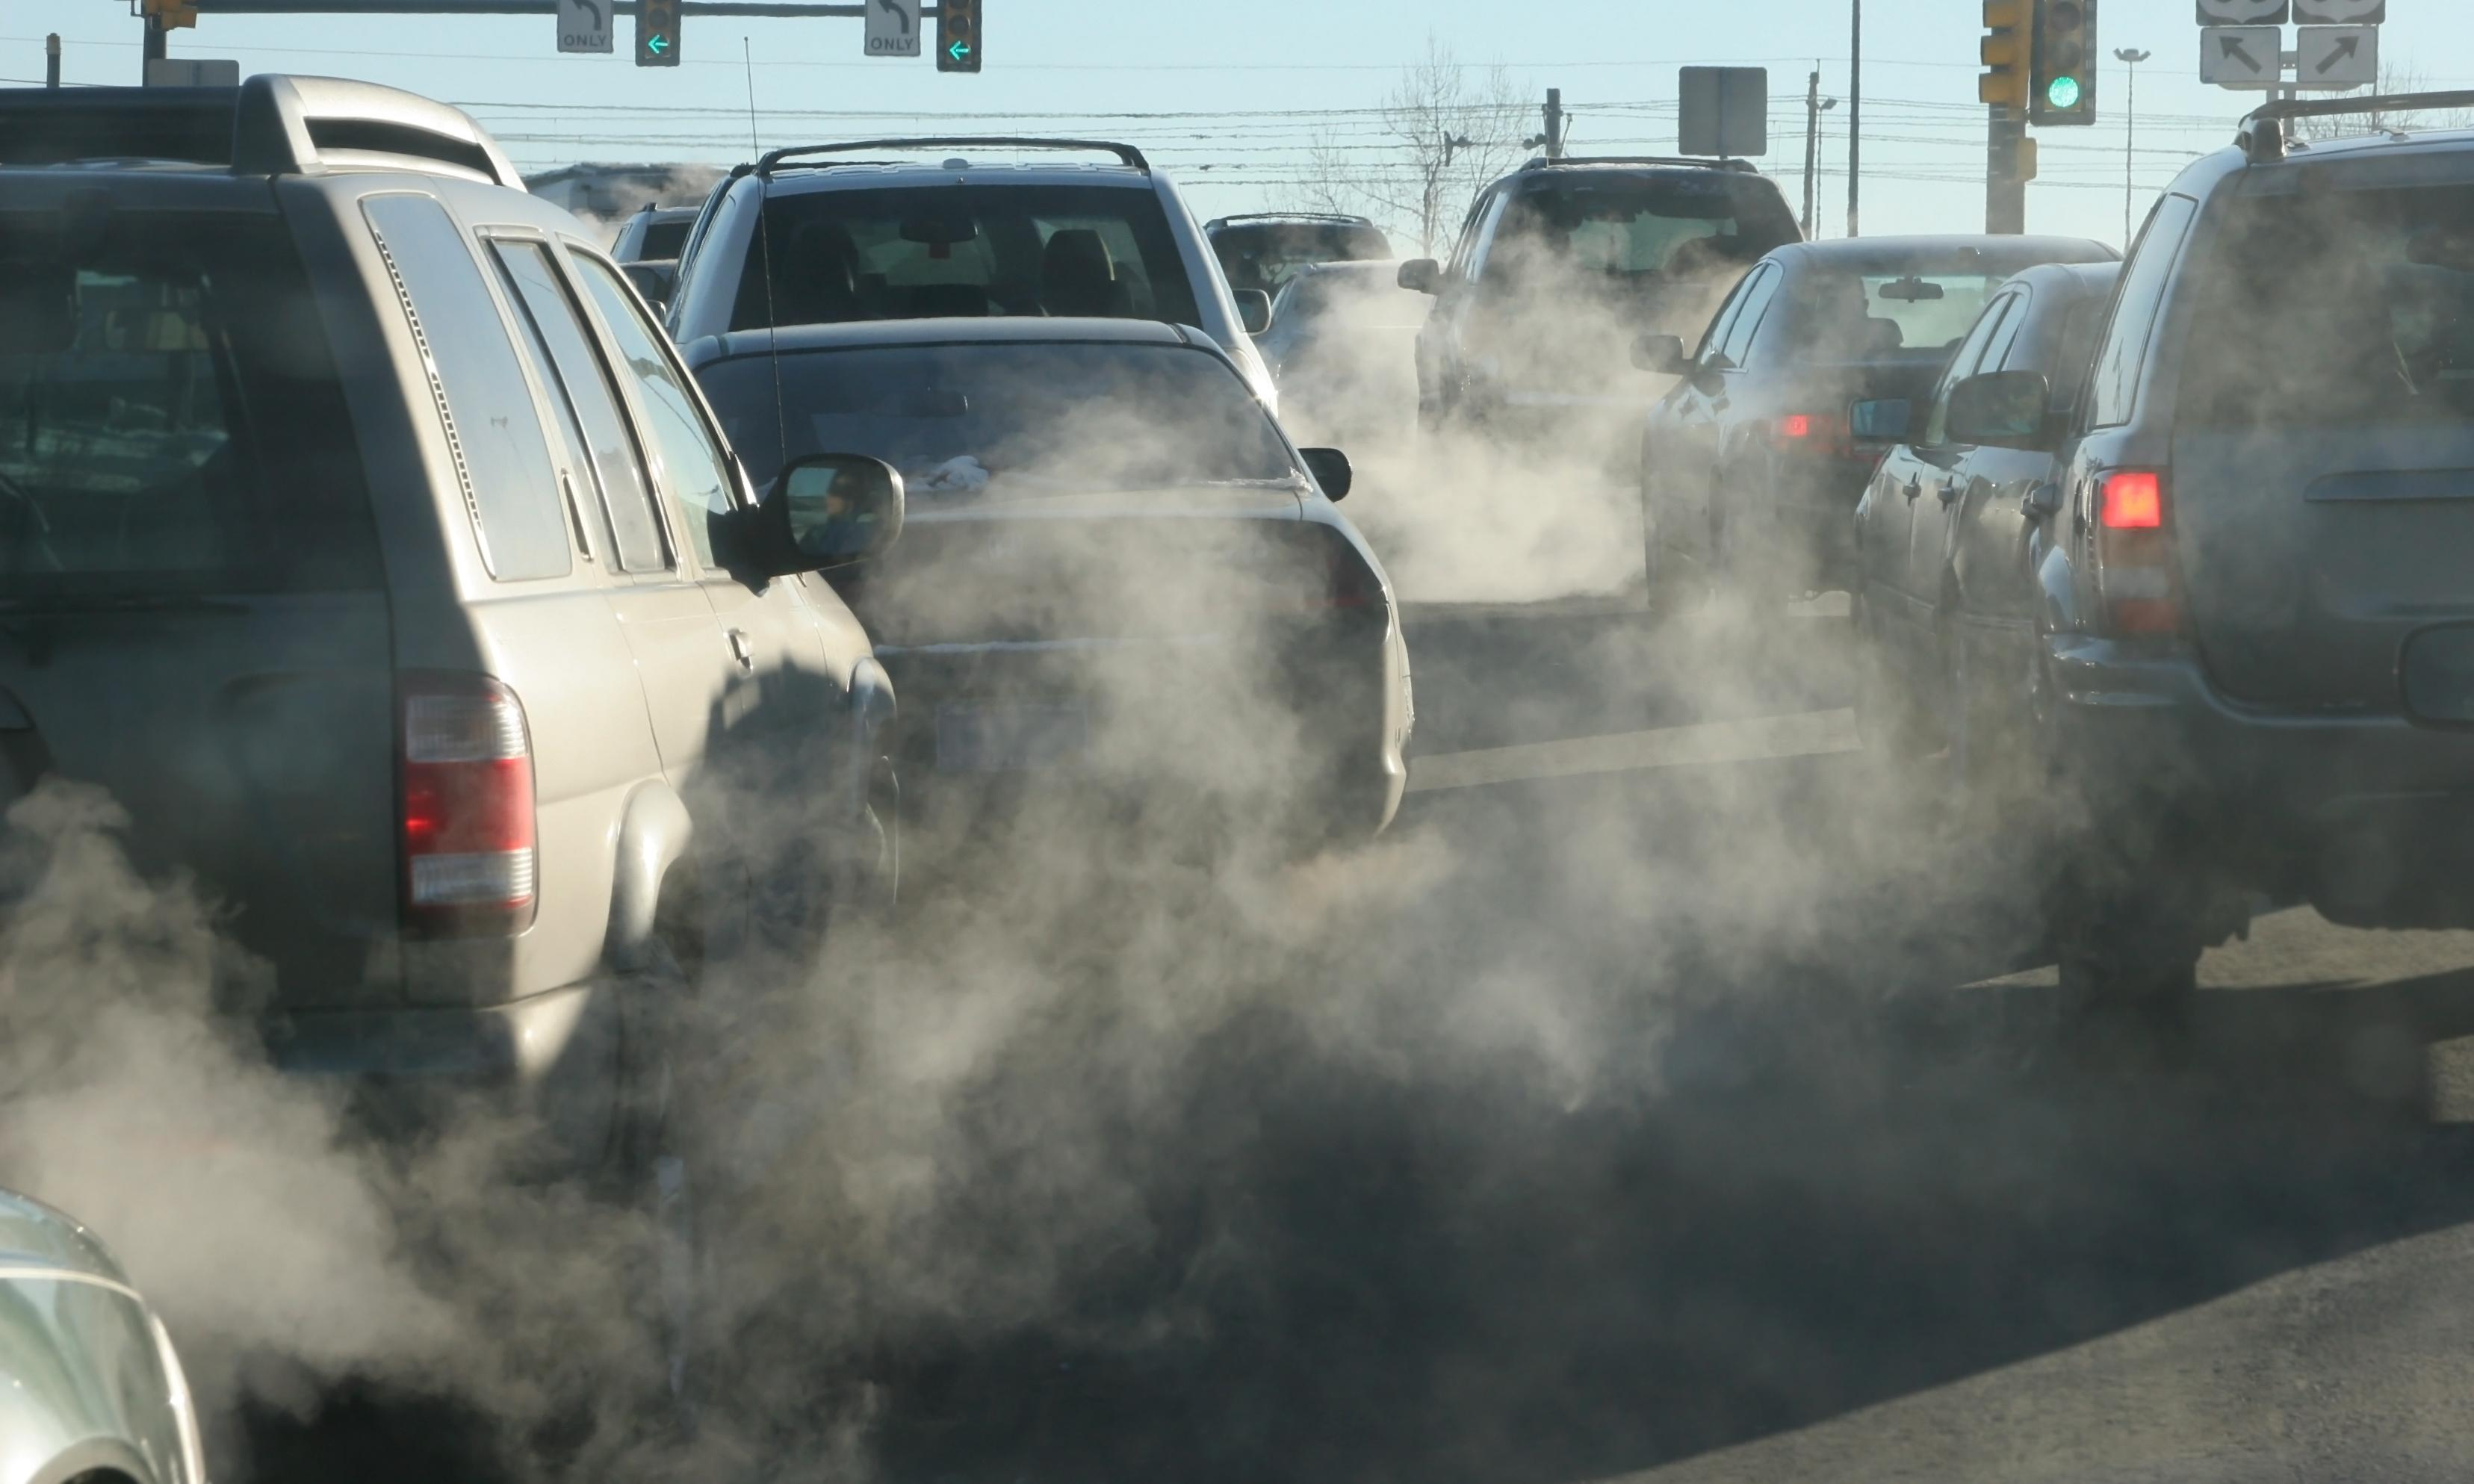 Raise car fuel prices to fight air pollution, says rightwing thinktank